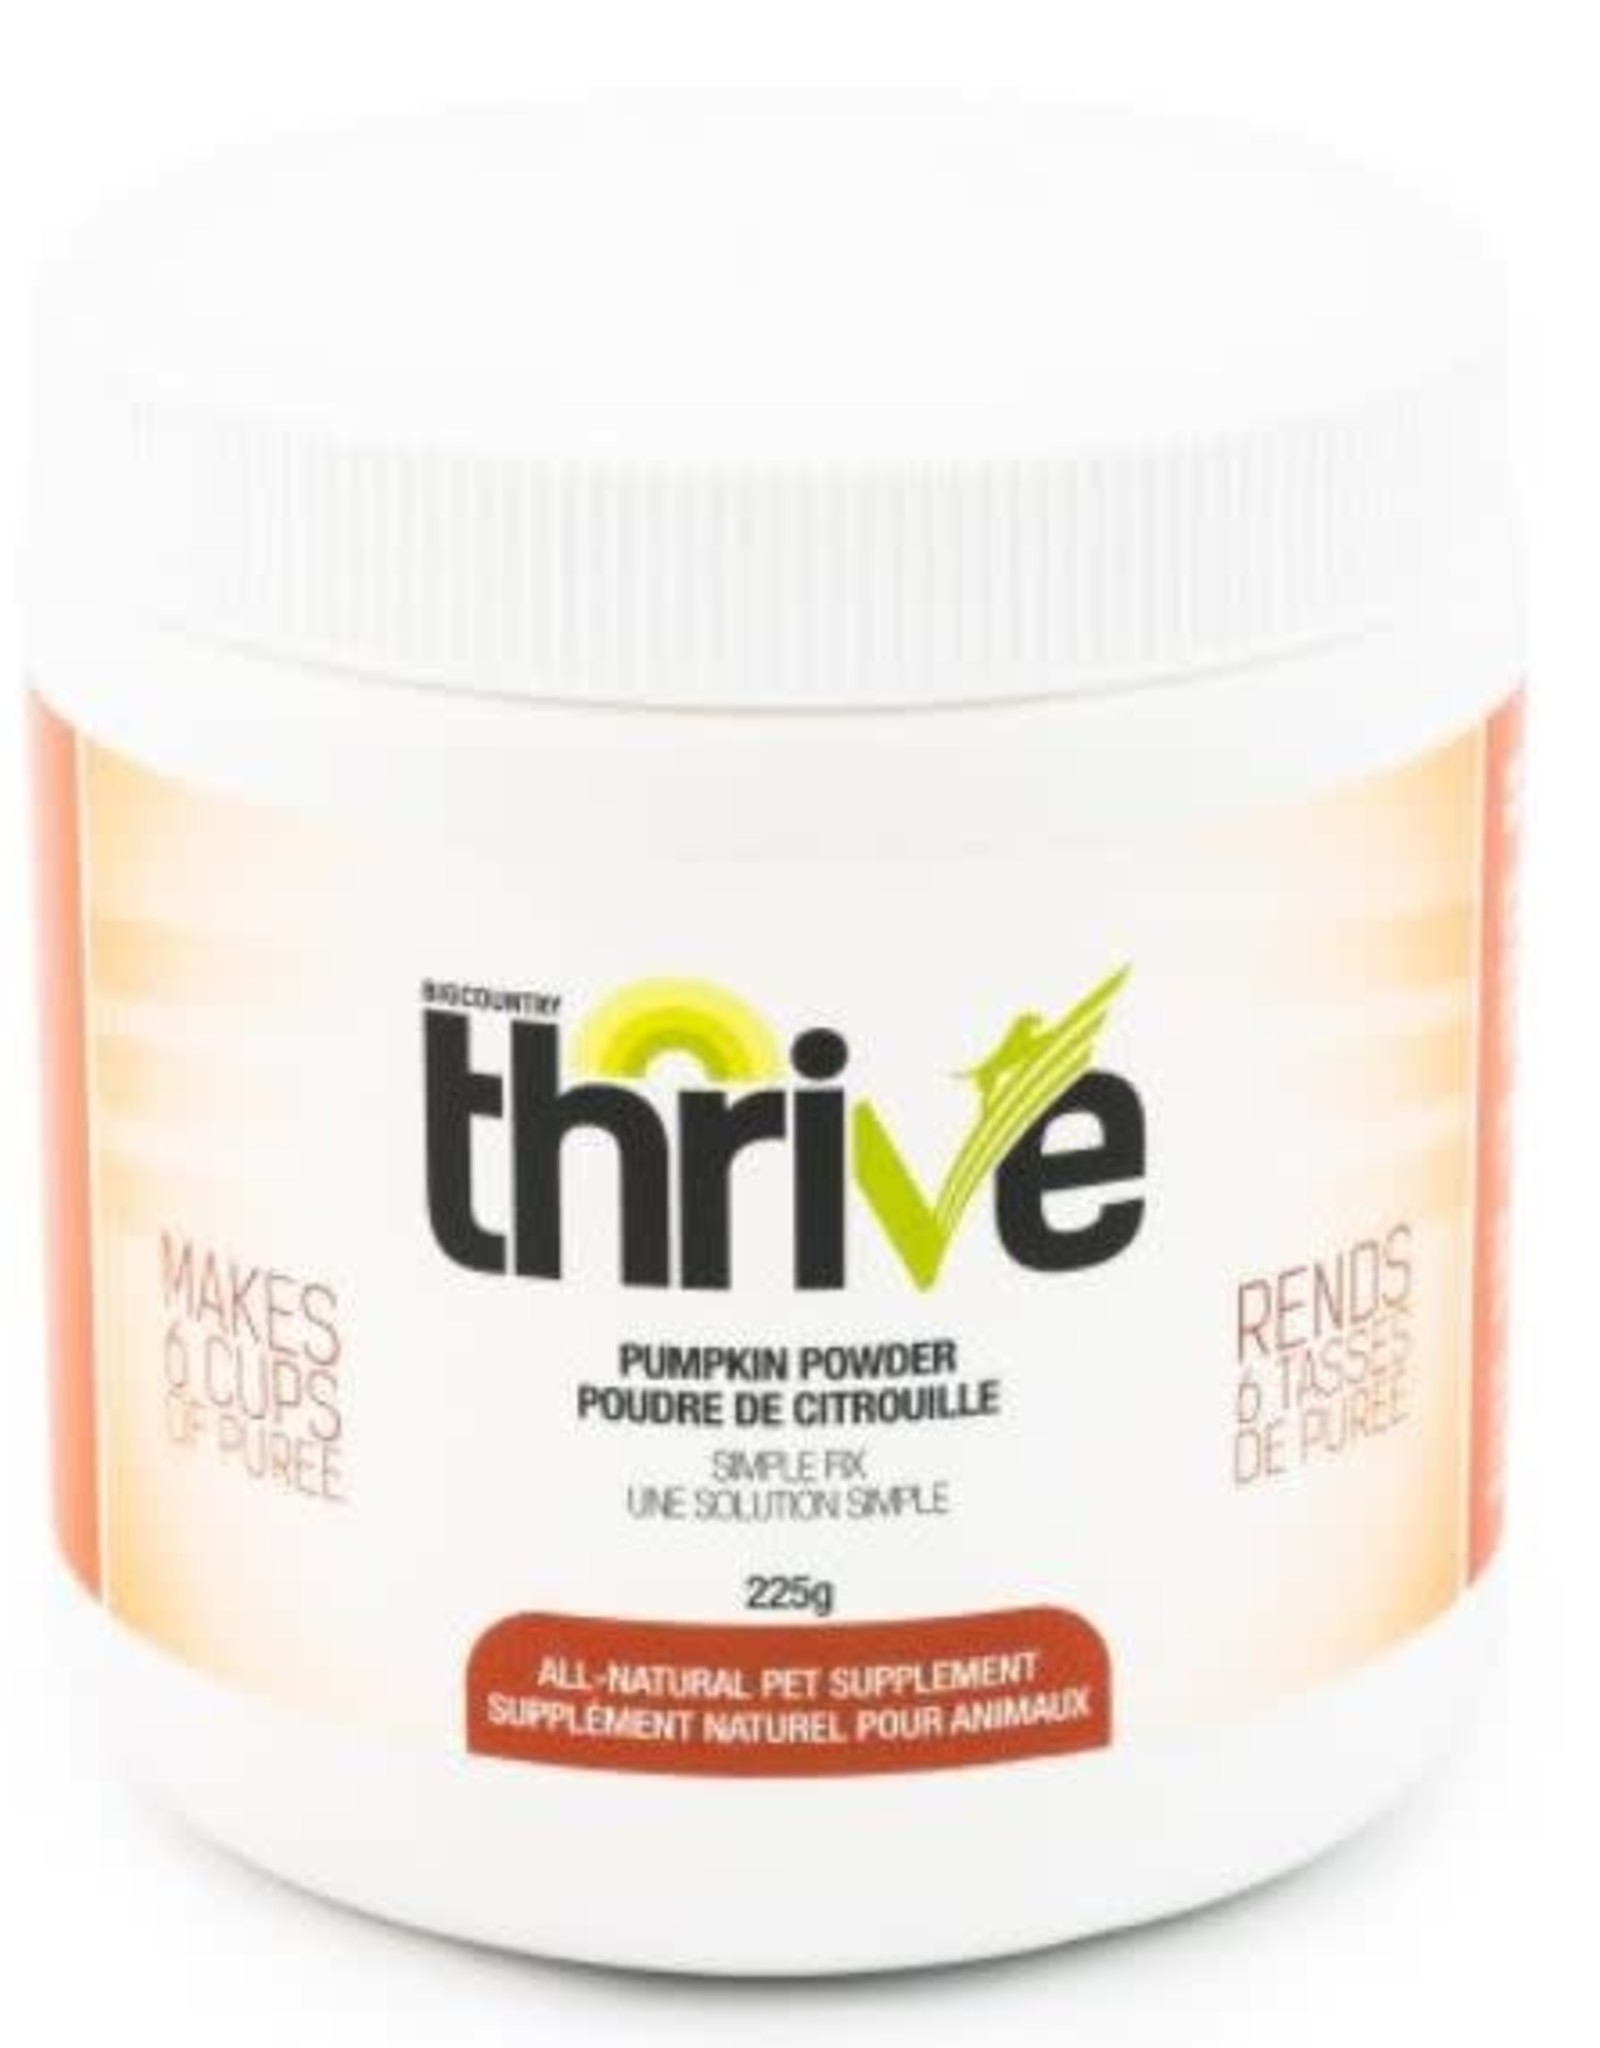 Thrive thrive pumpkin powder